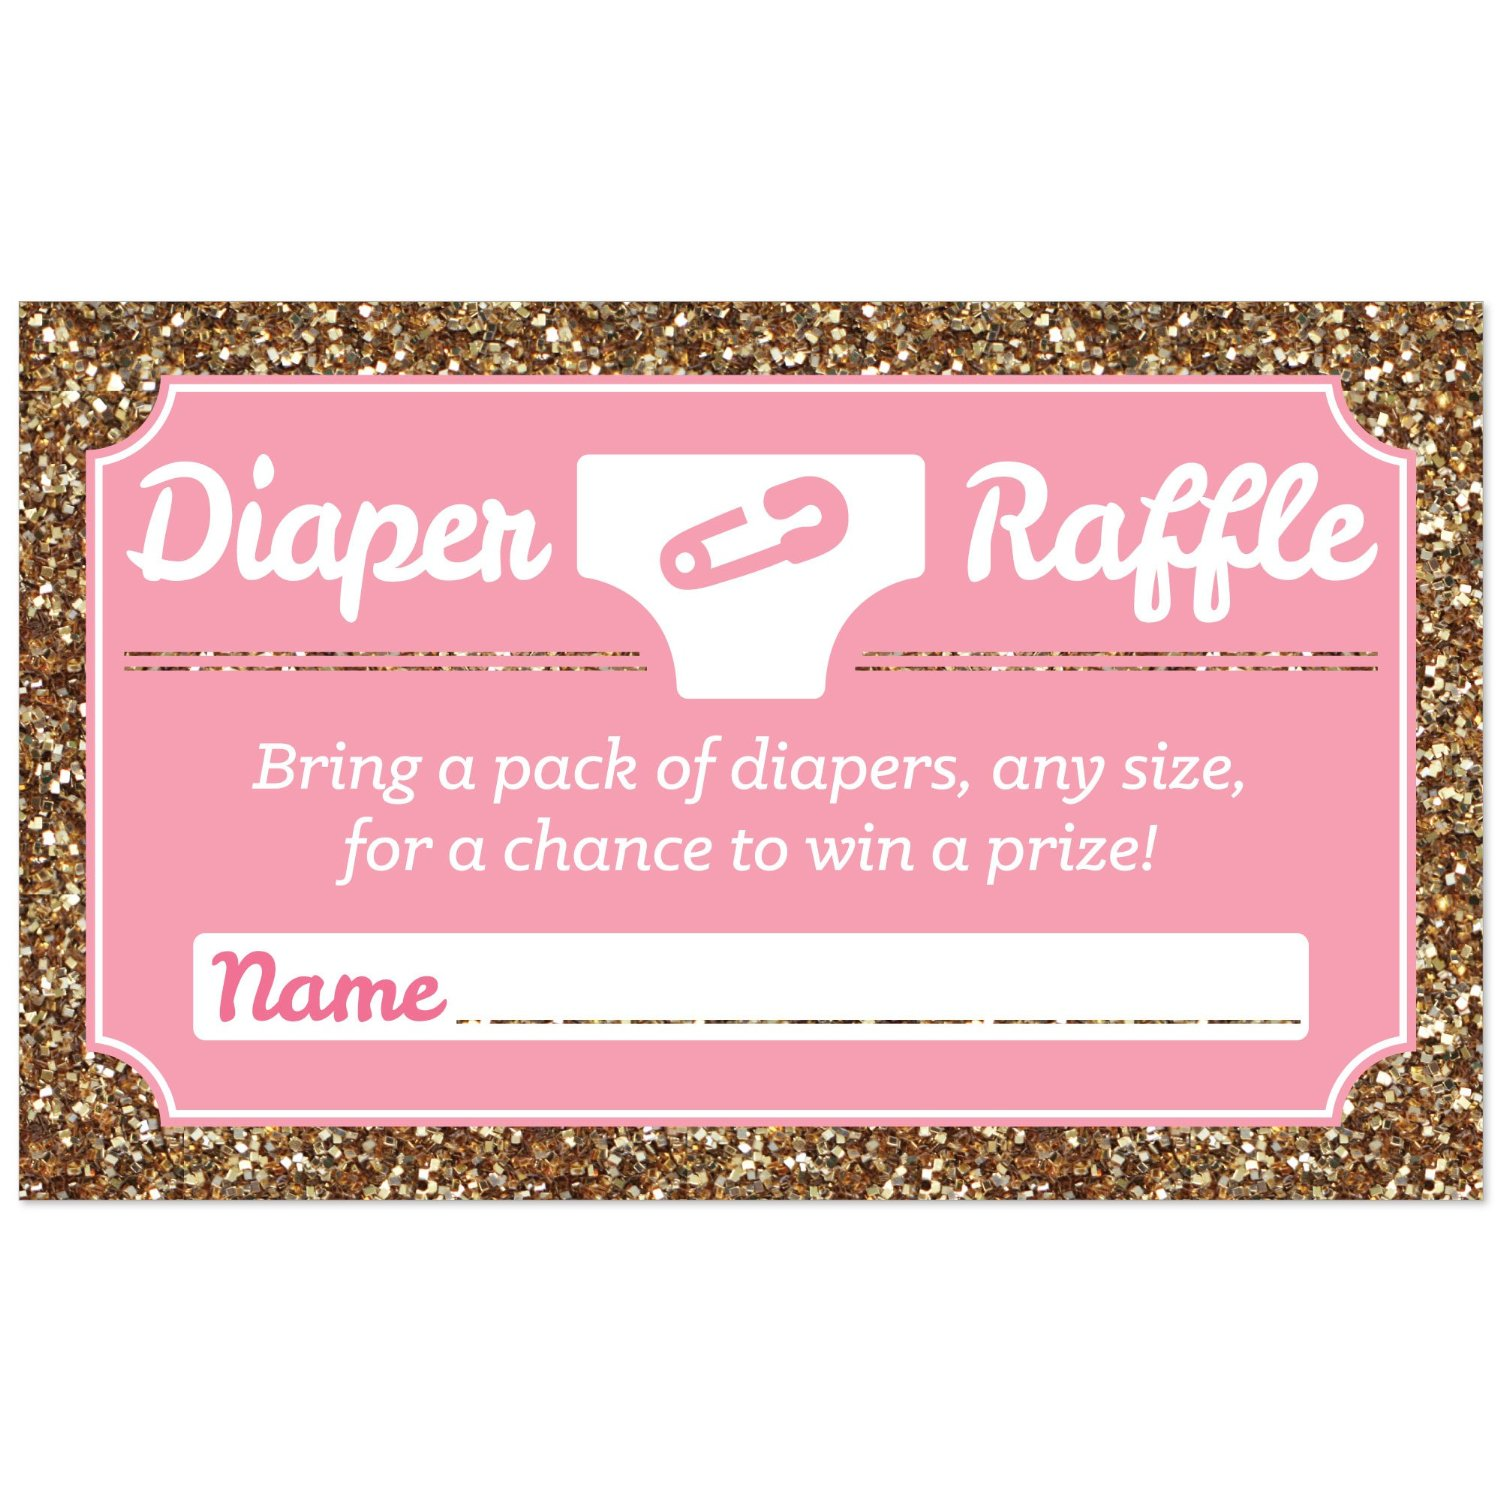 Hello Little One - Pink and Gold - Diaper Raffle Girl Baby Shower Game -18 Count